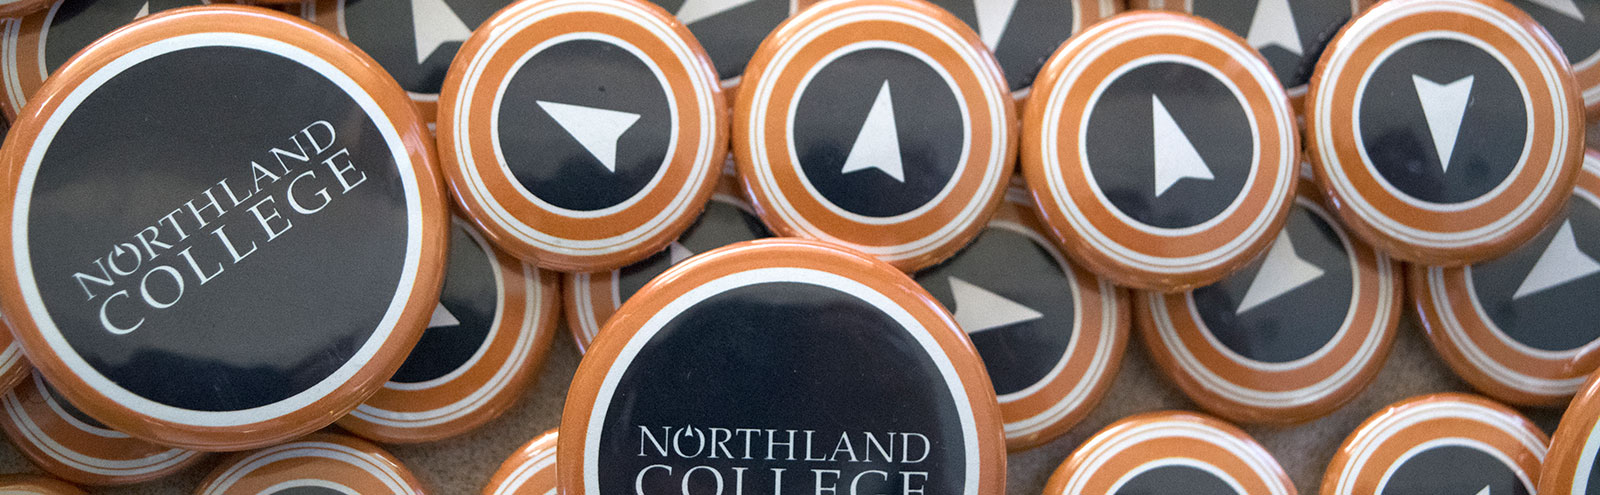 Northland College buttons